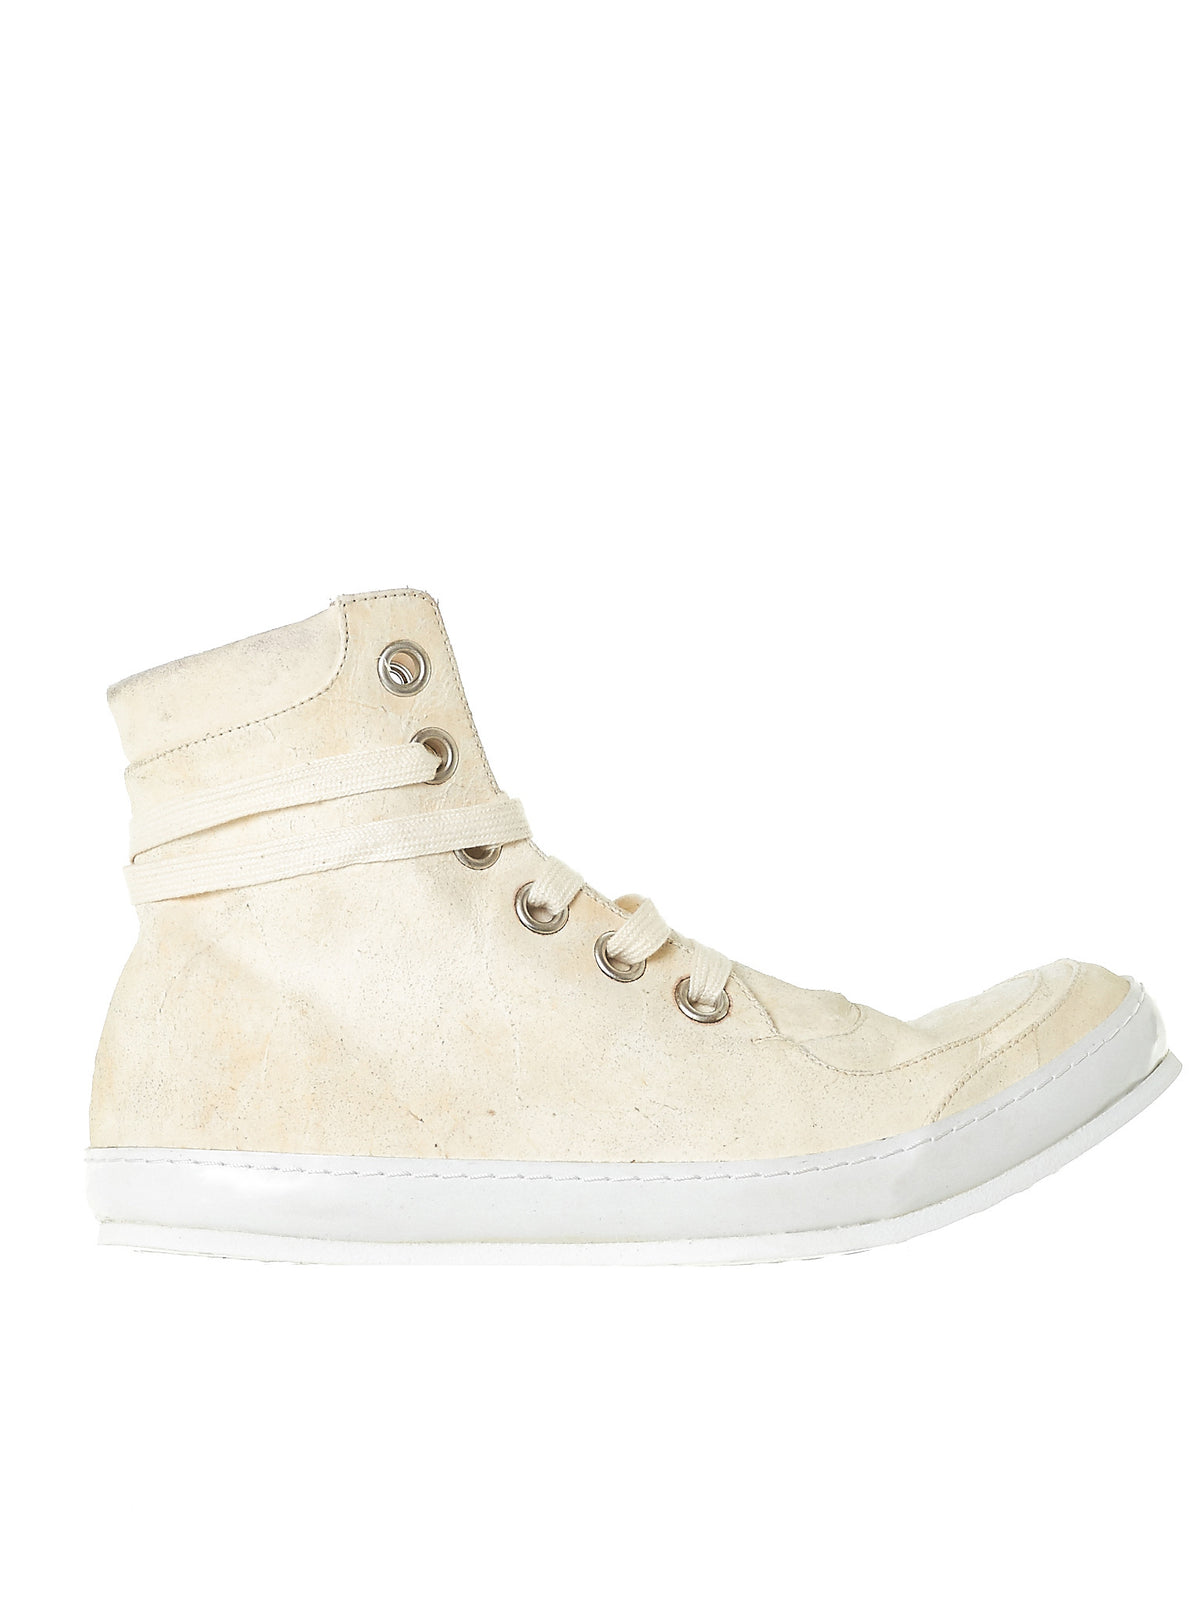 High-Top Leather Sneakers (SSN5-HORSE-REVERSE-WHITE) - H. Lorenzo